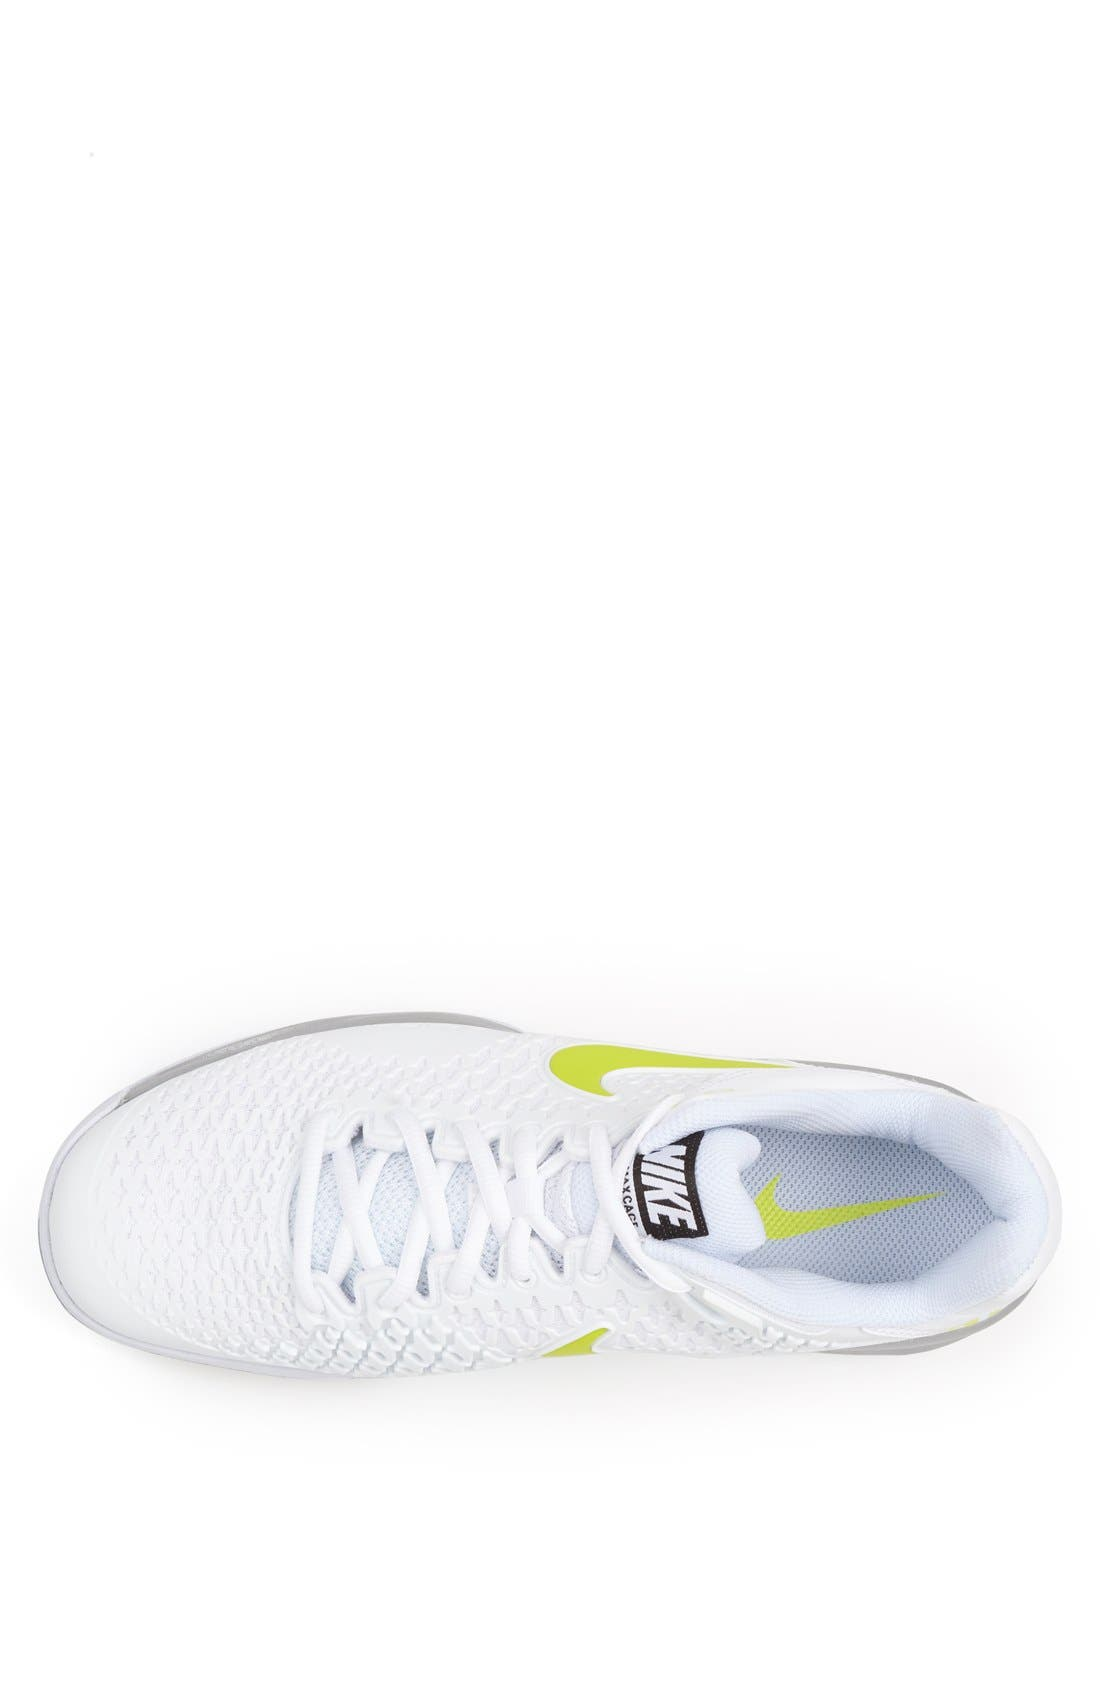 Alternate Image 3  - Nike 'Air Max Cage' Tennis Shoe (Men)